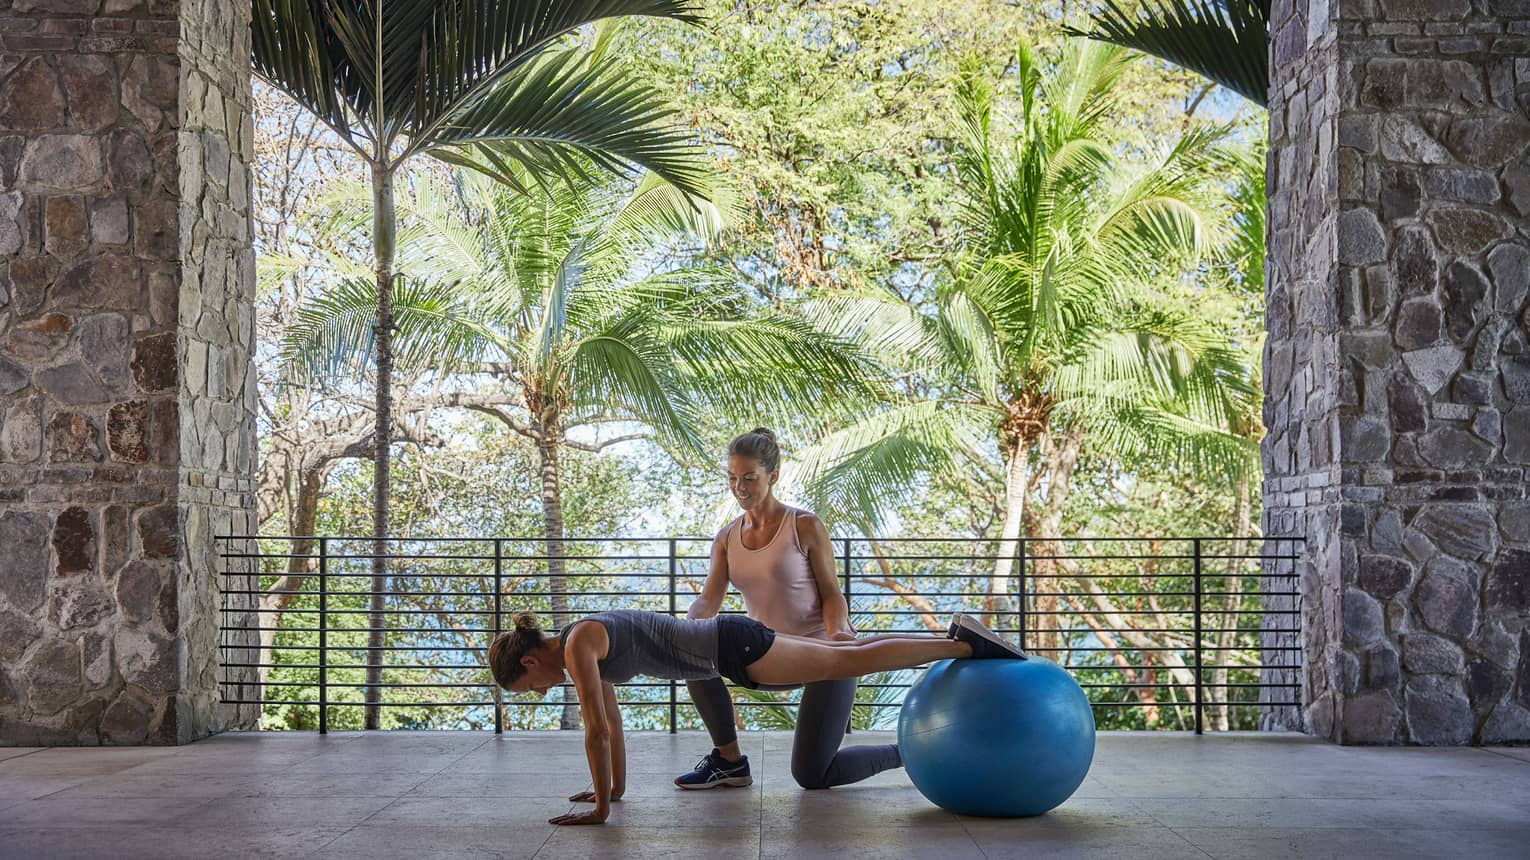 Trainer helps woman balance legs on blue pilates ball in stone fitness centre